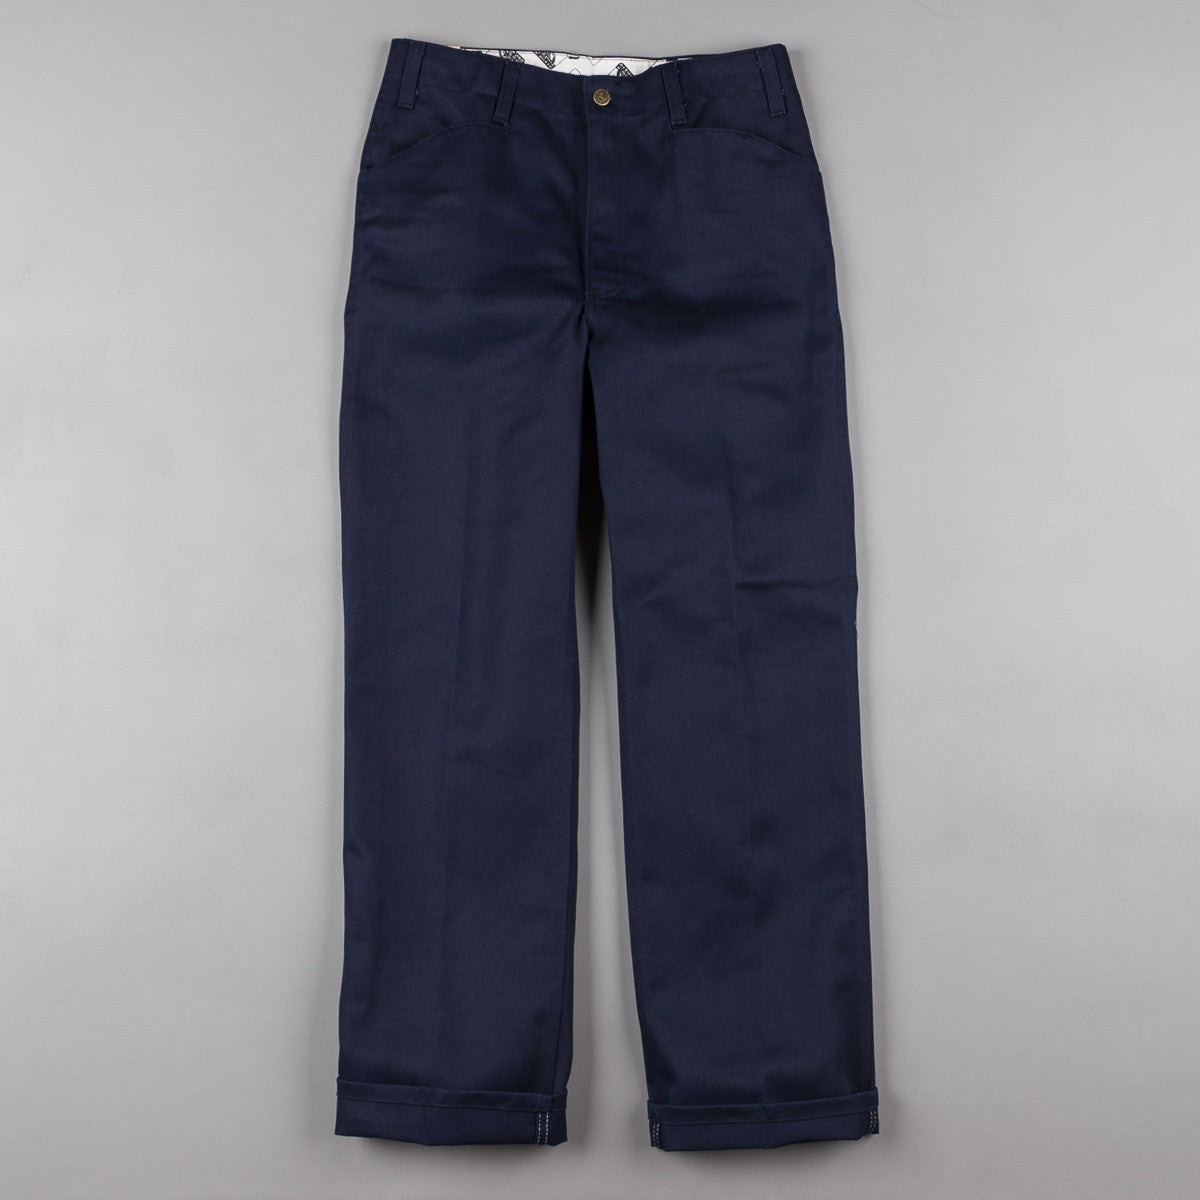 Ben Davis Trim Fit Work Trousers - Navy